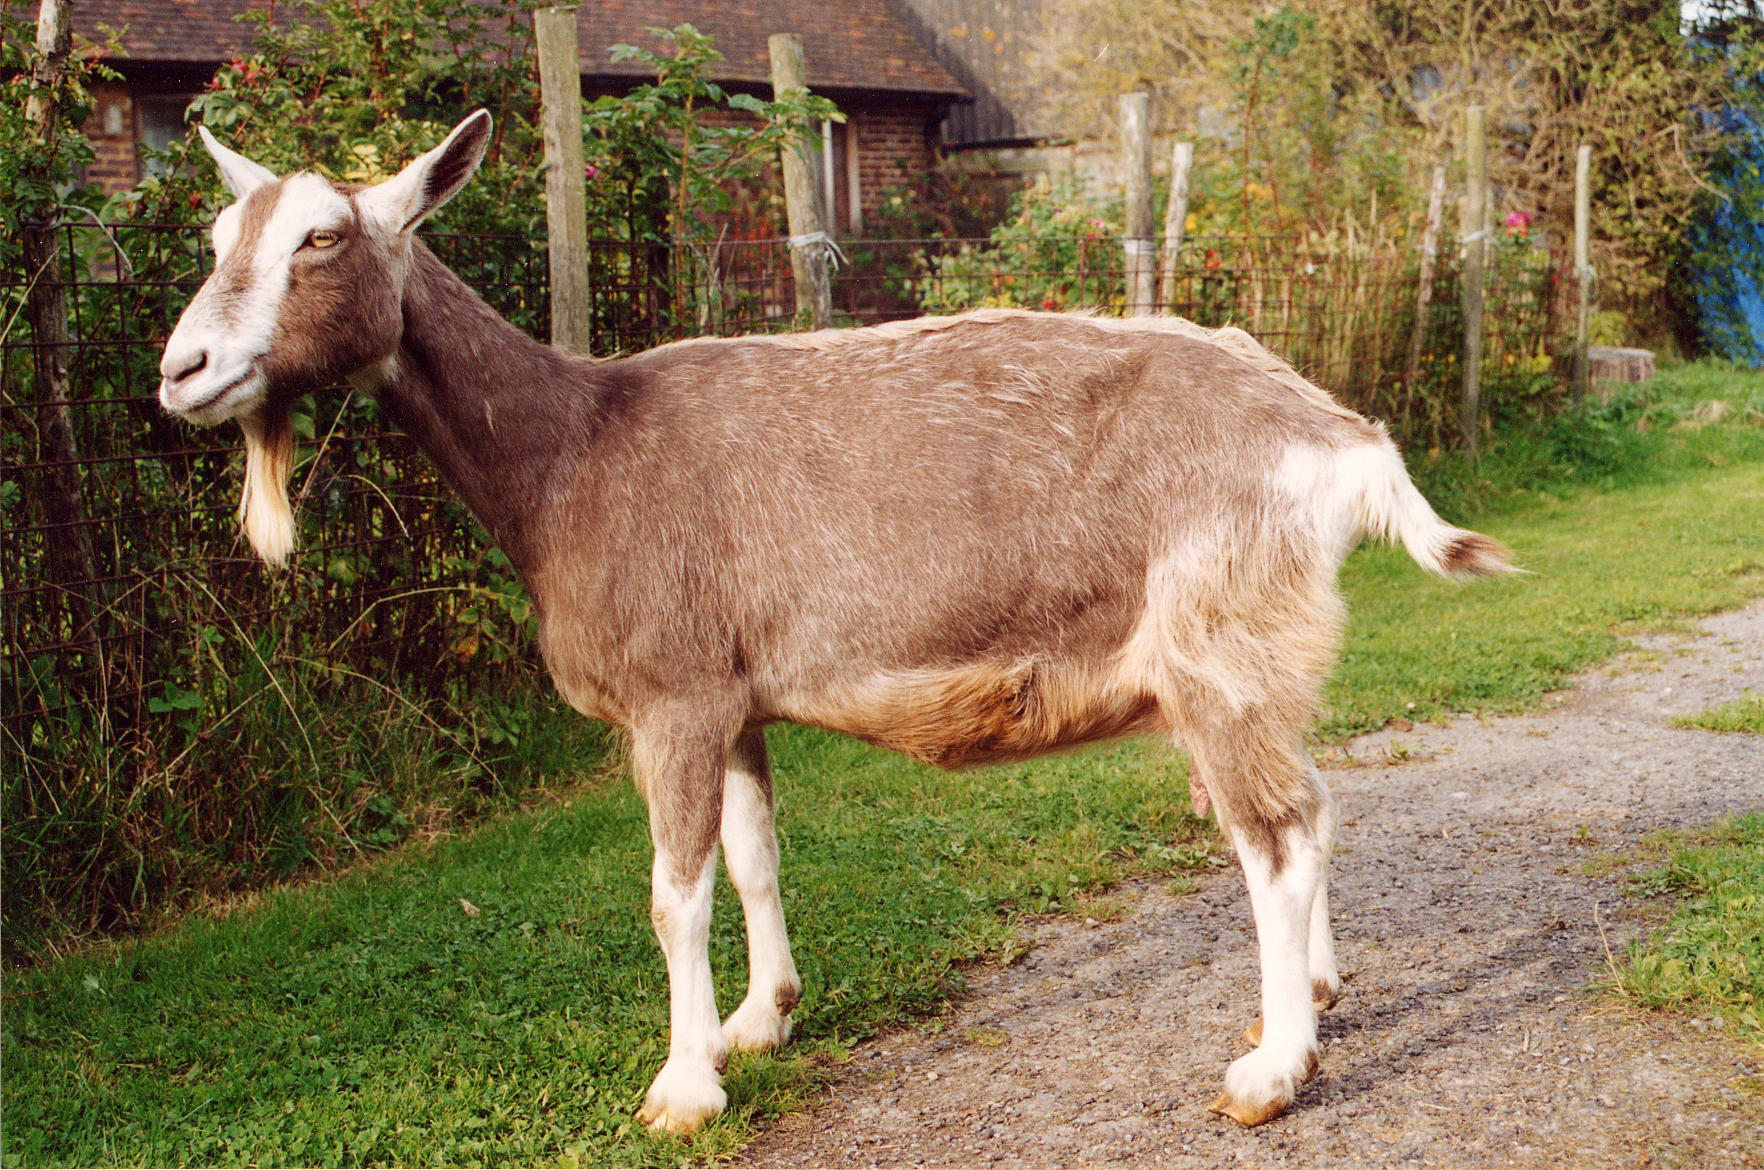 The same goat with full hair regrowth after Camrosa had cleared the mites and stopped the itching- showing Camrosa to be a useful product to have for your goat care